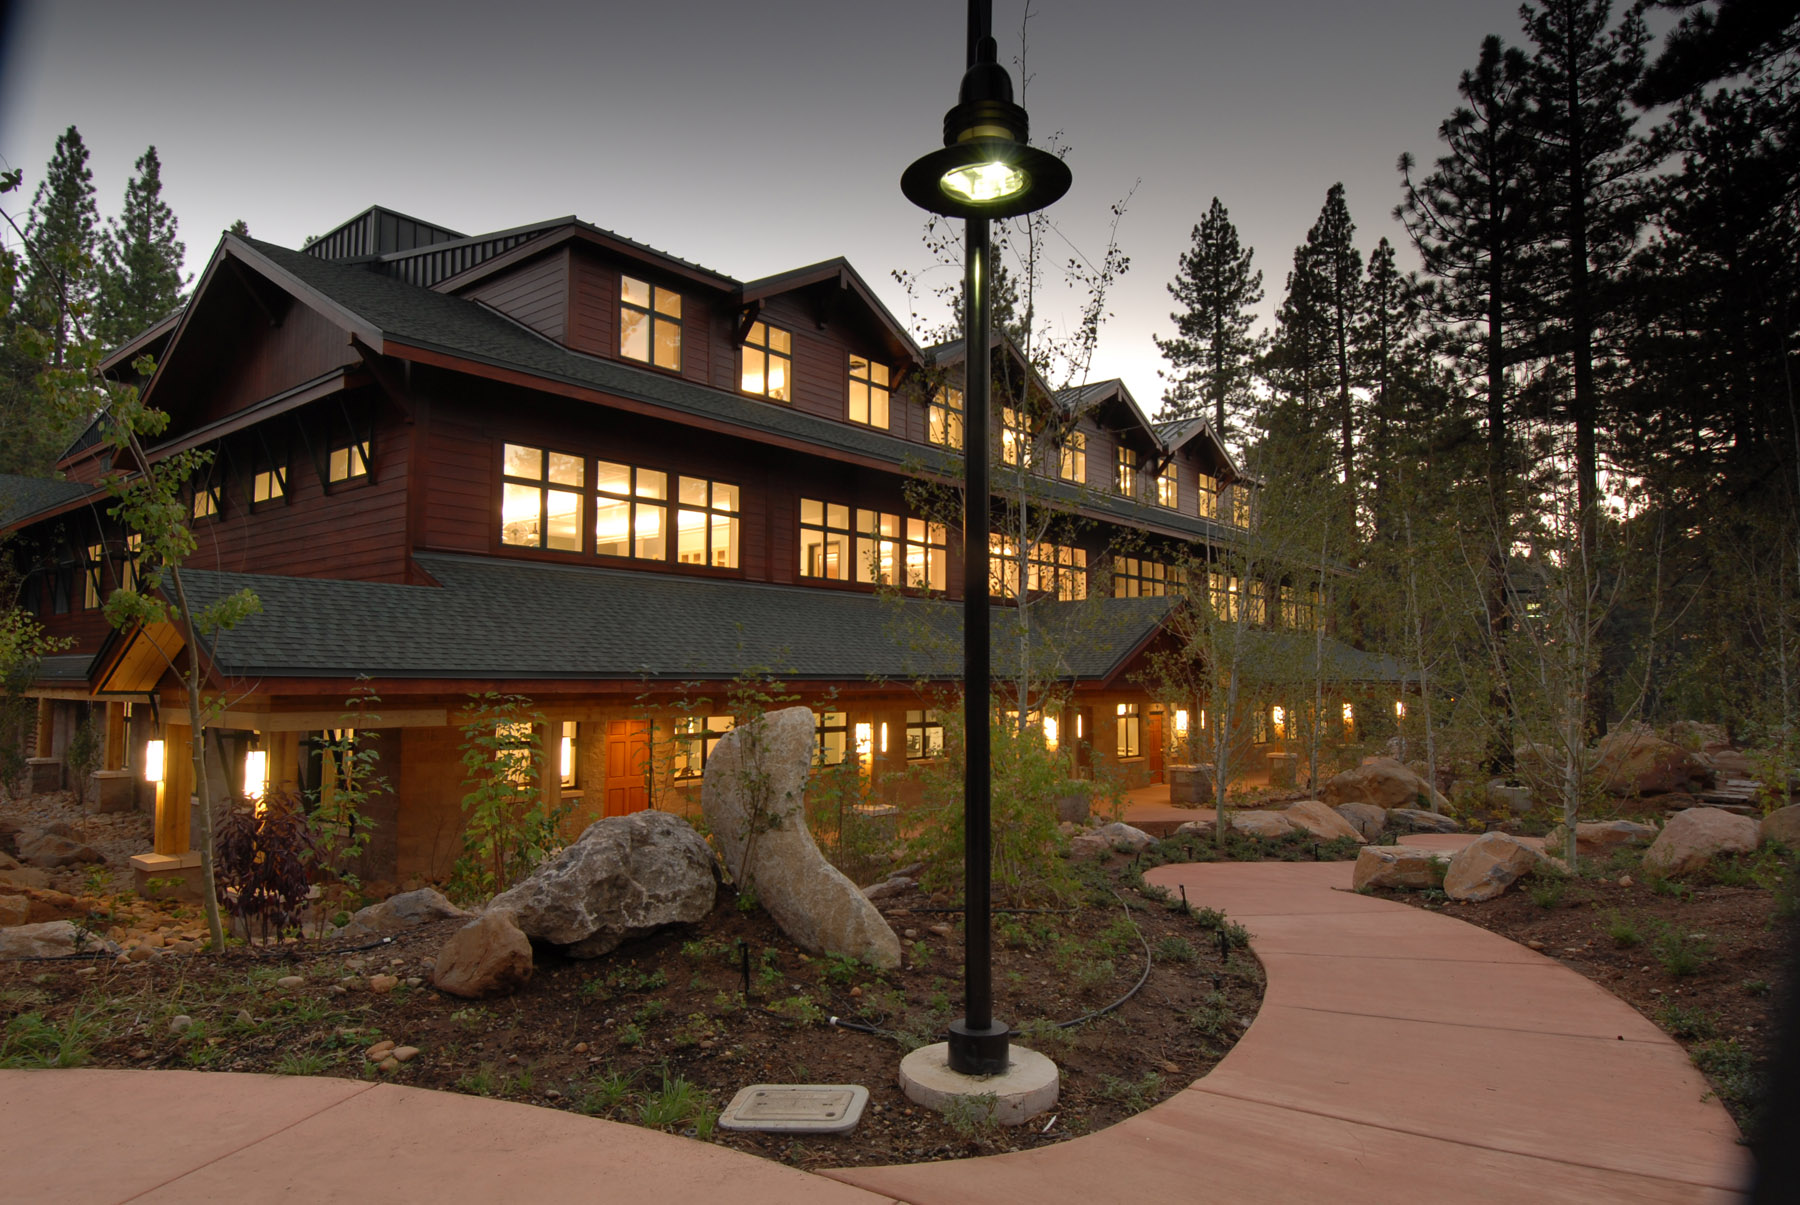 Tahoe Center for Environmental Sciences